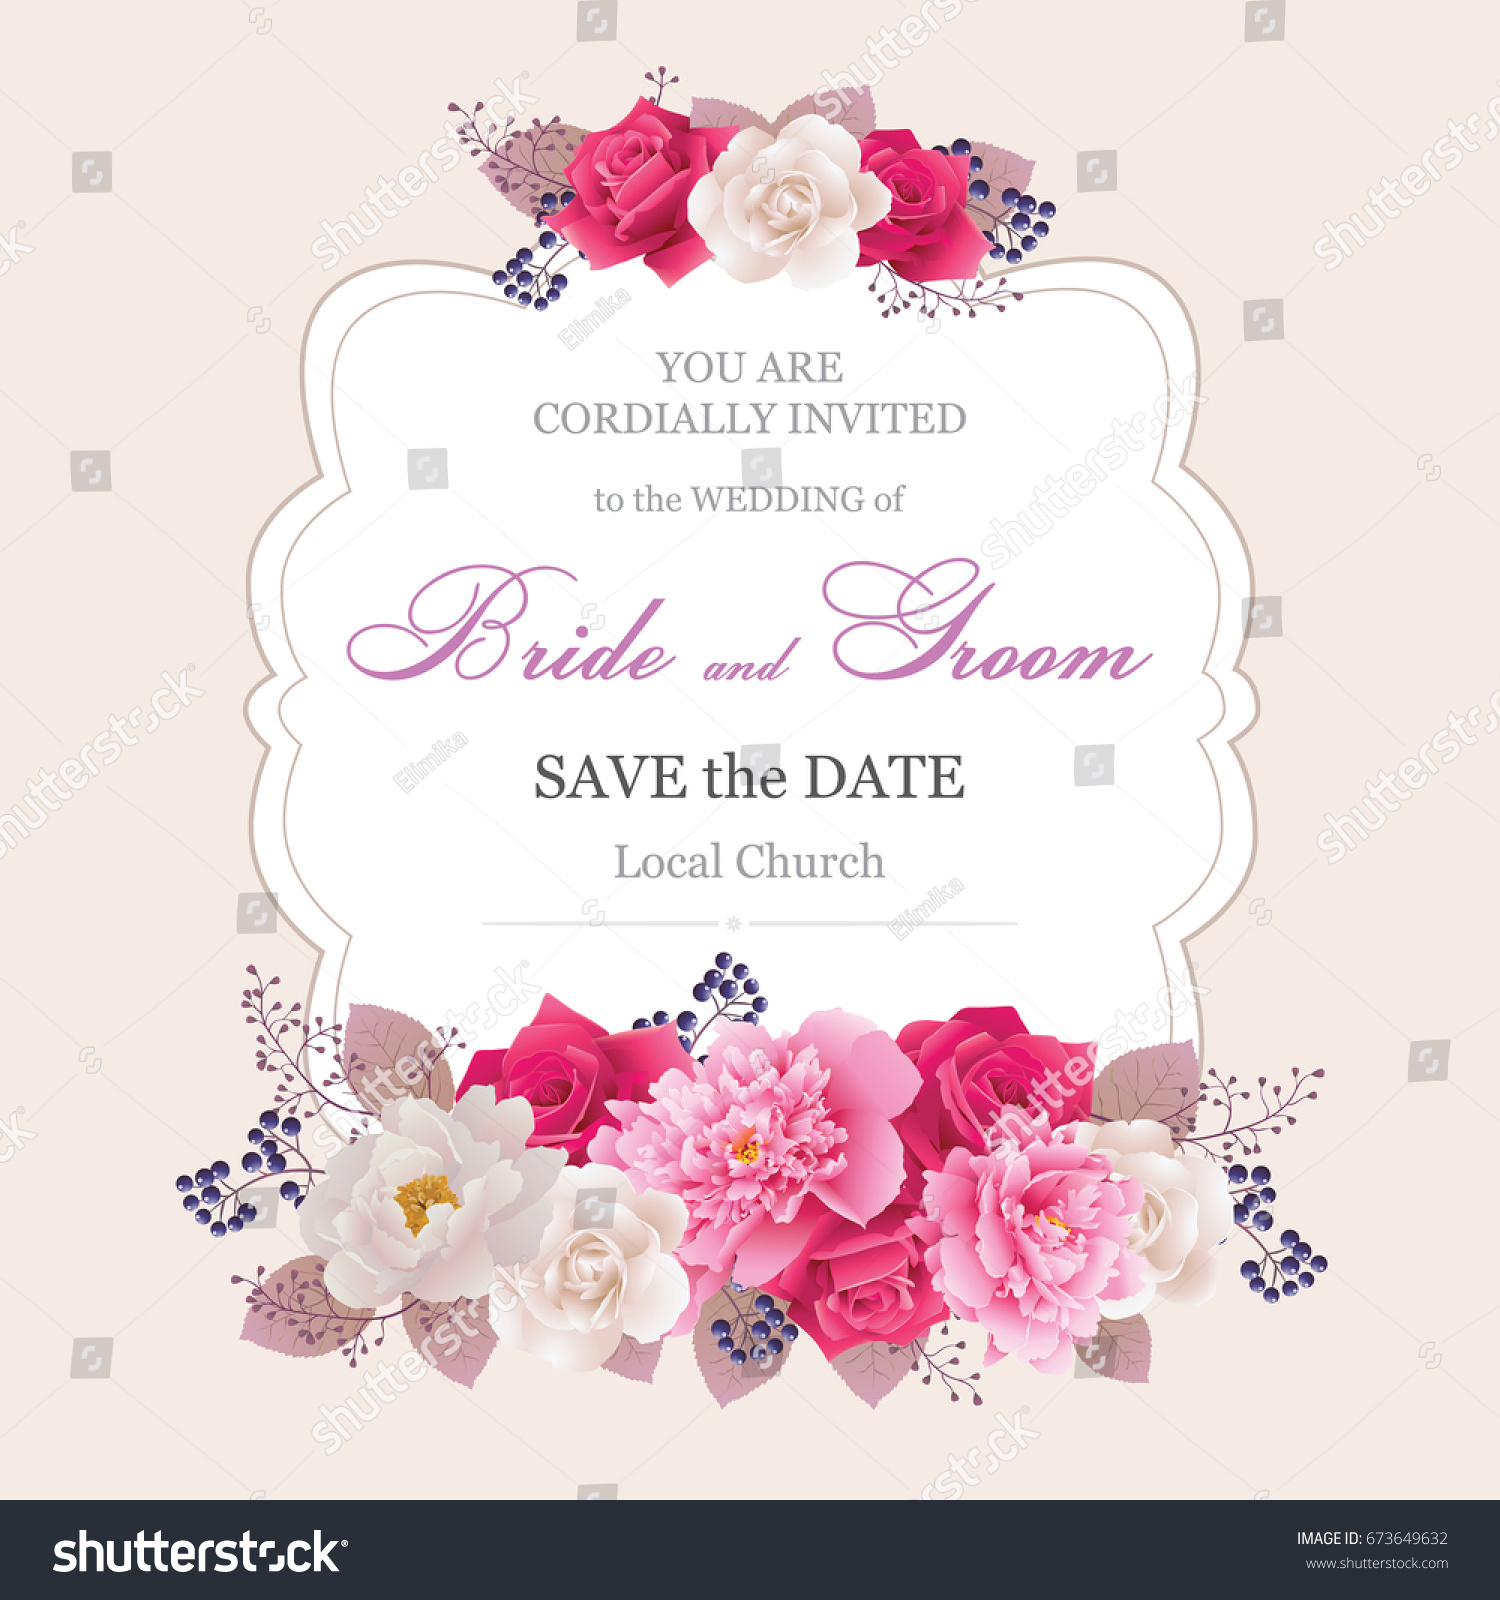 Wedding invitation cards flowerbeautiful white pink stock vector wedding invitation cards with flowerautiful white and pink peonies red and white roses monicamarmolfo Gallery